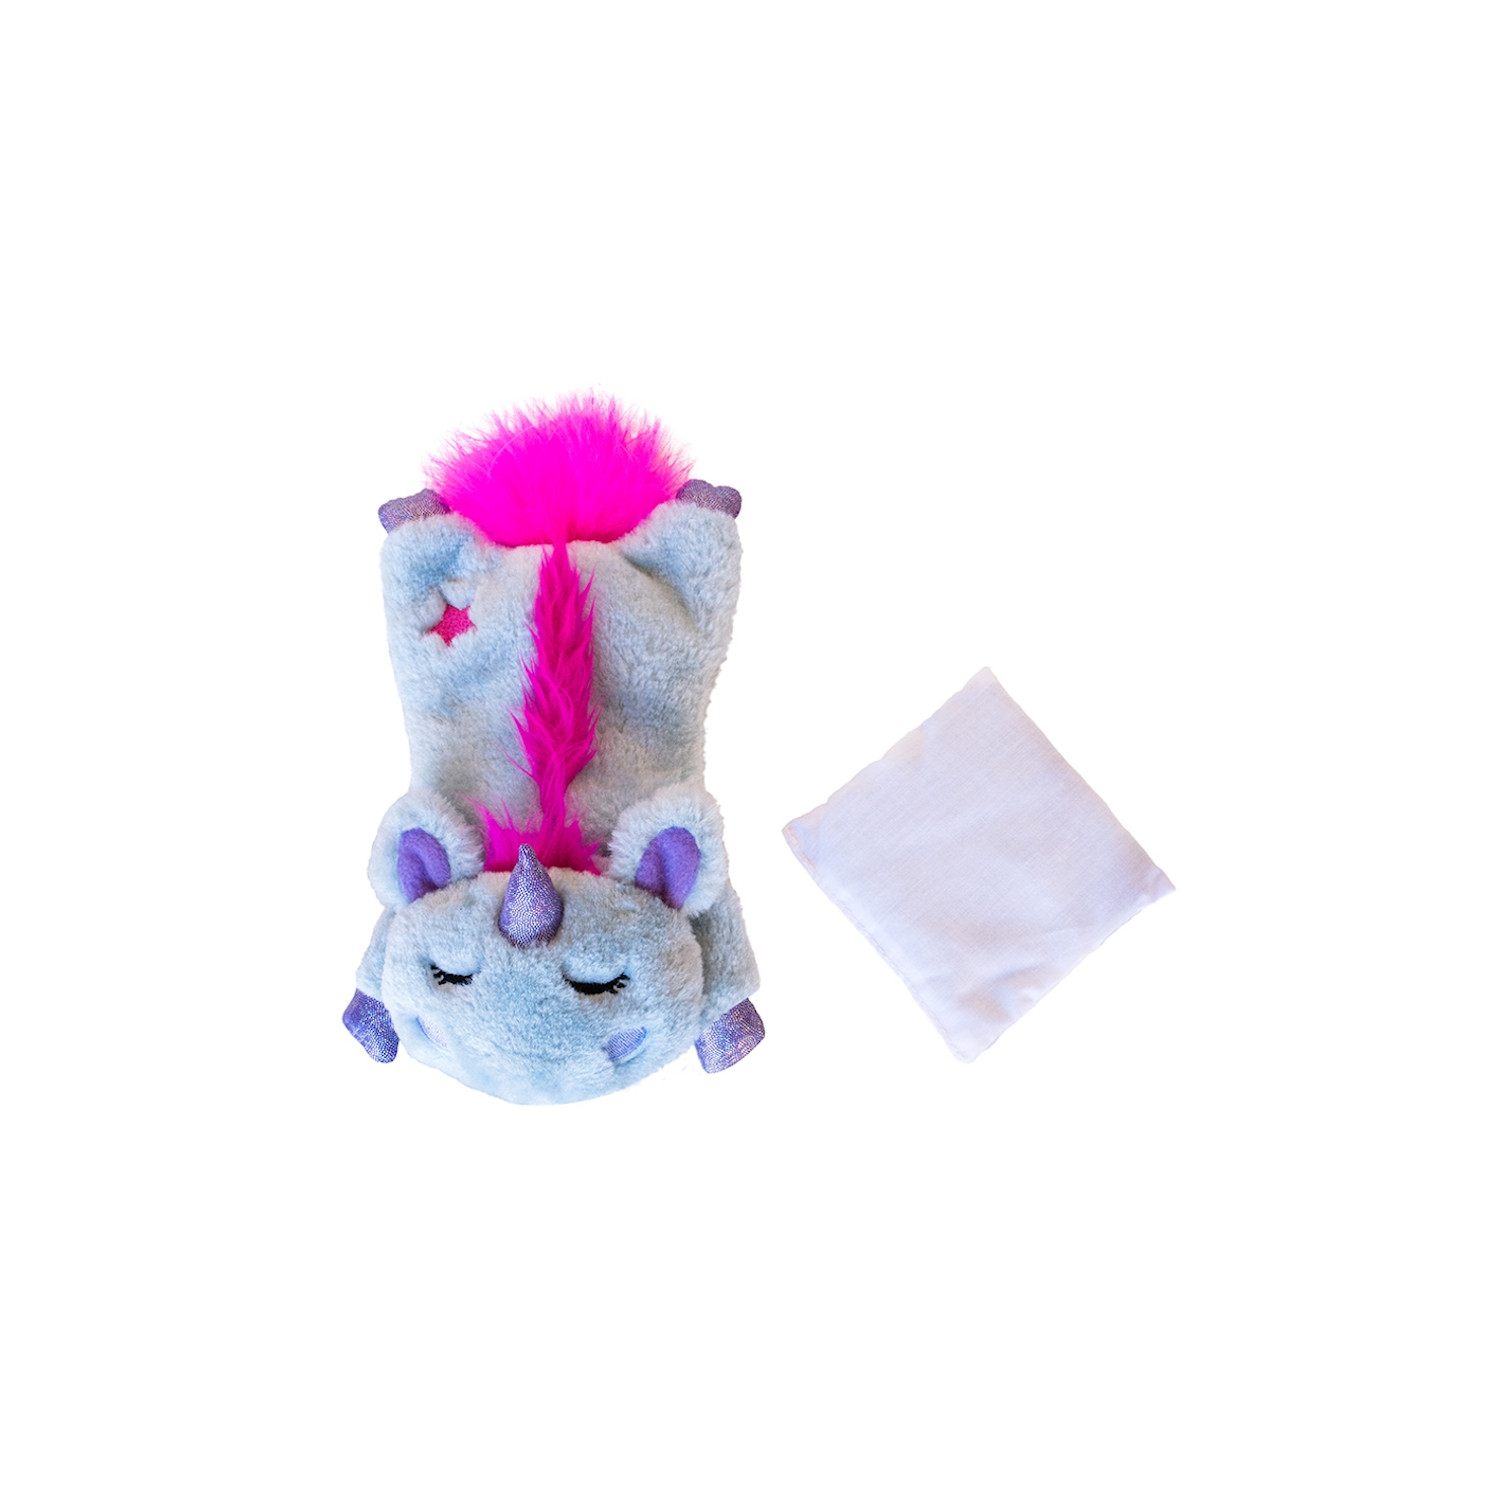 Cuddle Pal Unicorn - Petstages